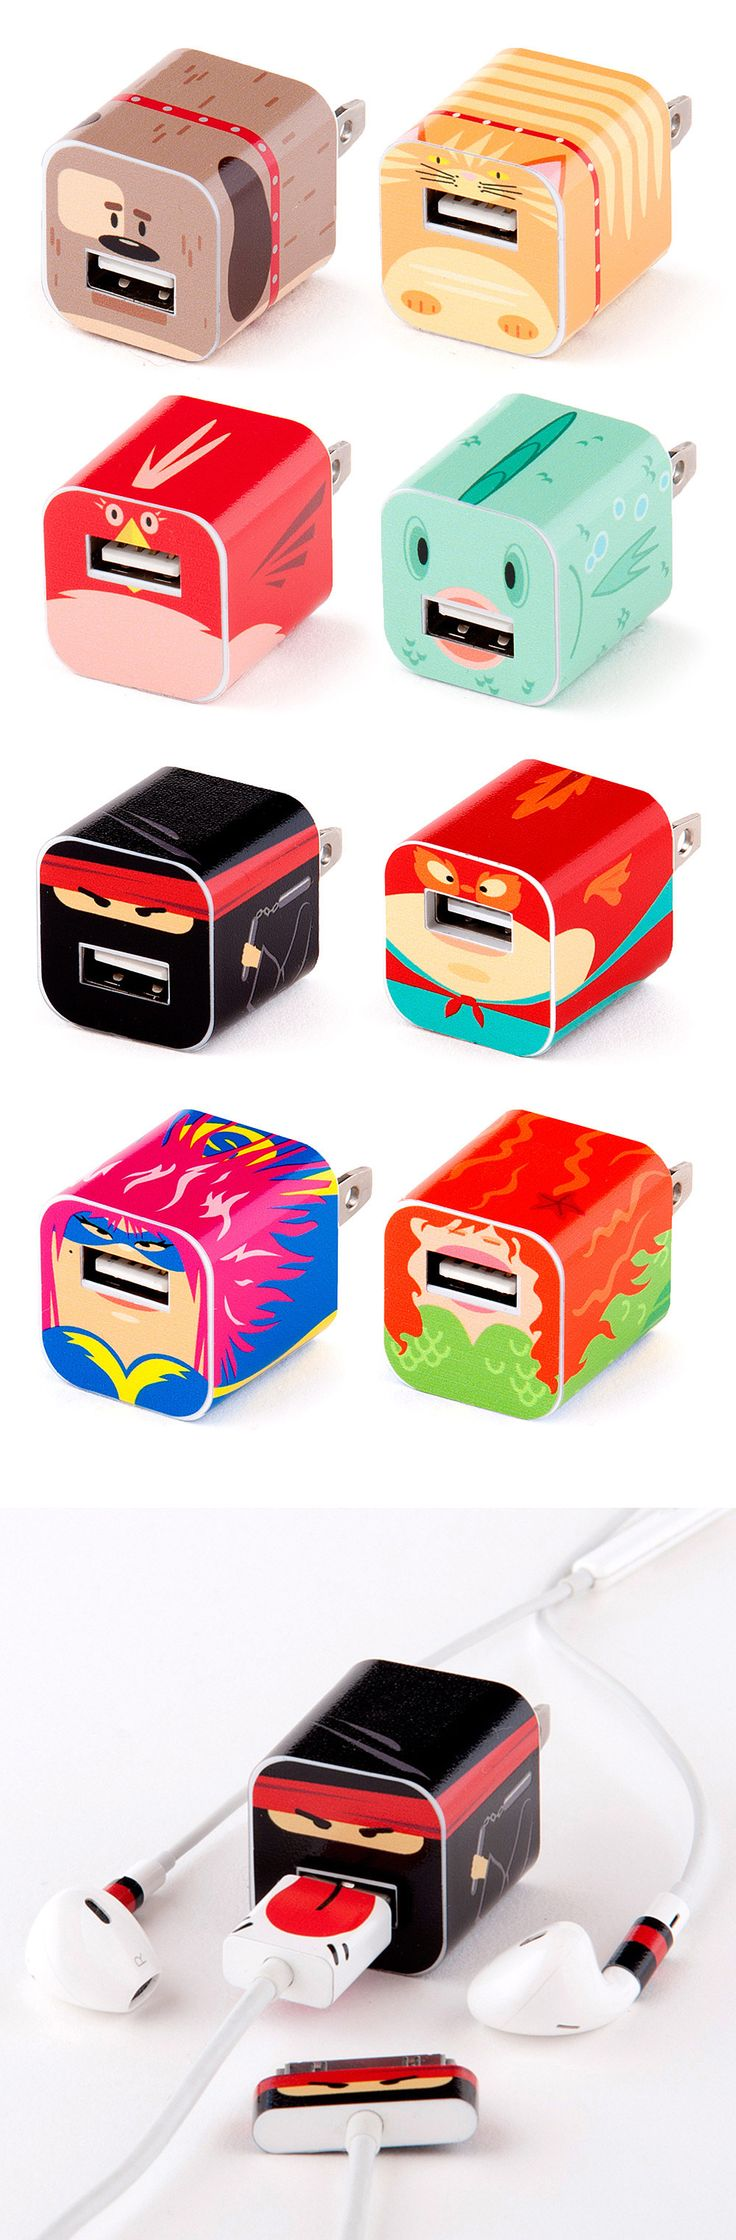 Truffol.com | Fun decals for iPhone chargers #wallcharger #usbcharger